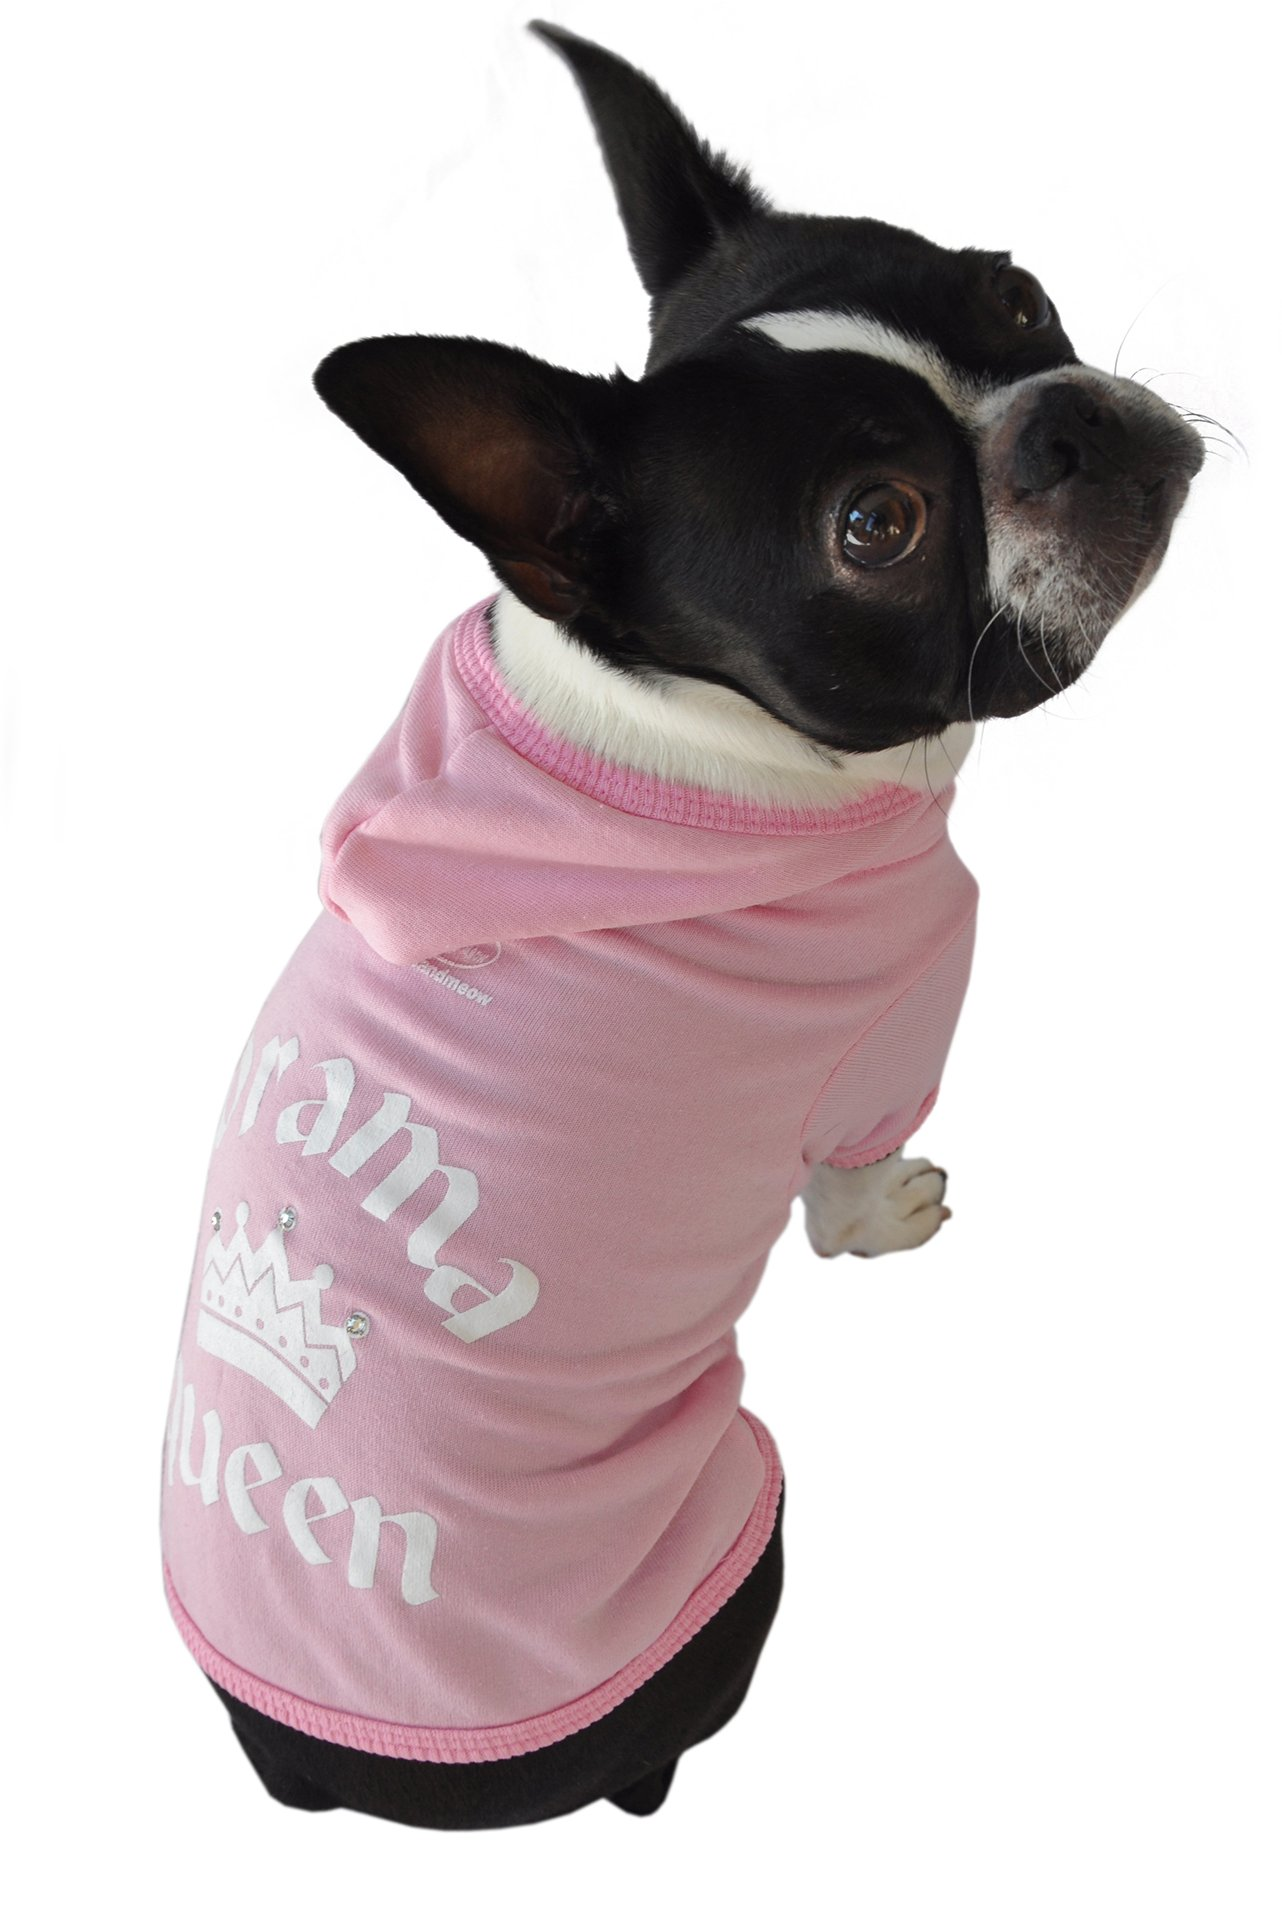 Ruff Ruff and Meow Dog Hoodie, Drama Queen, Pink, Small